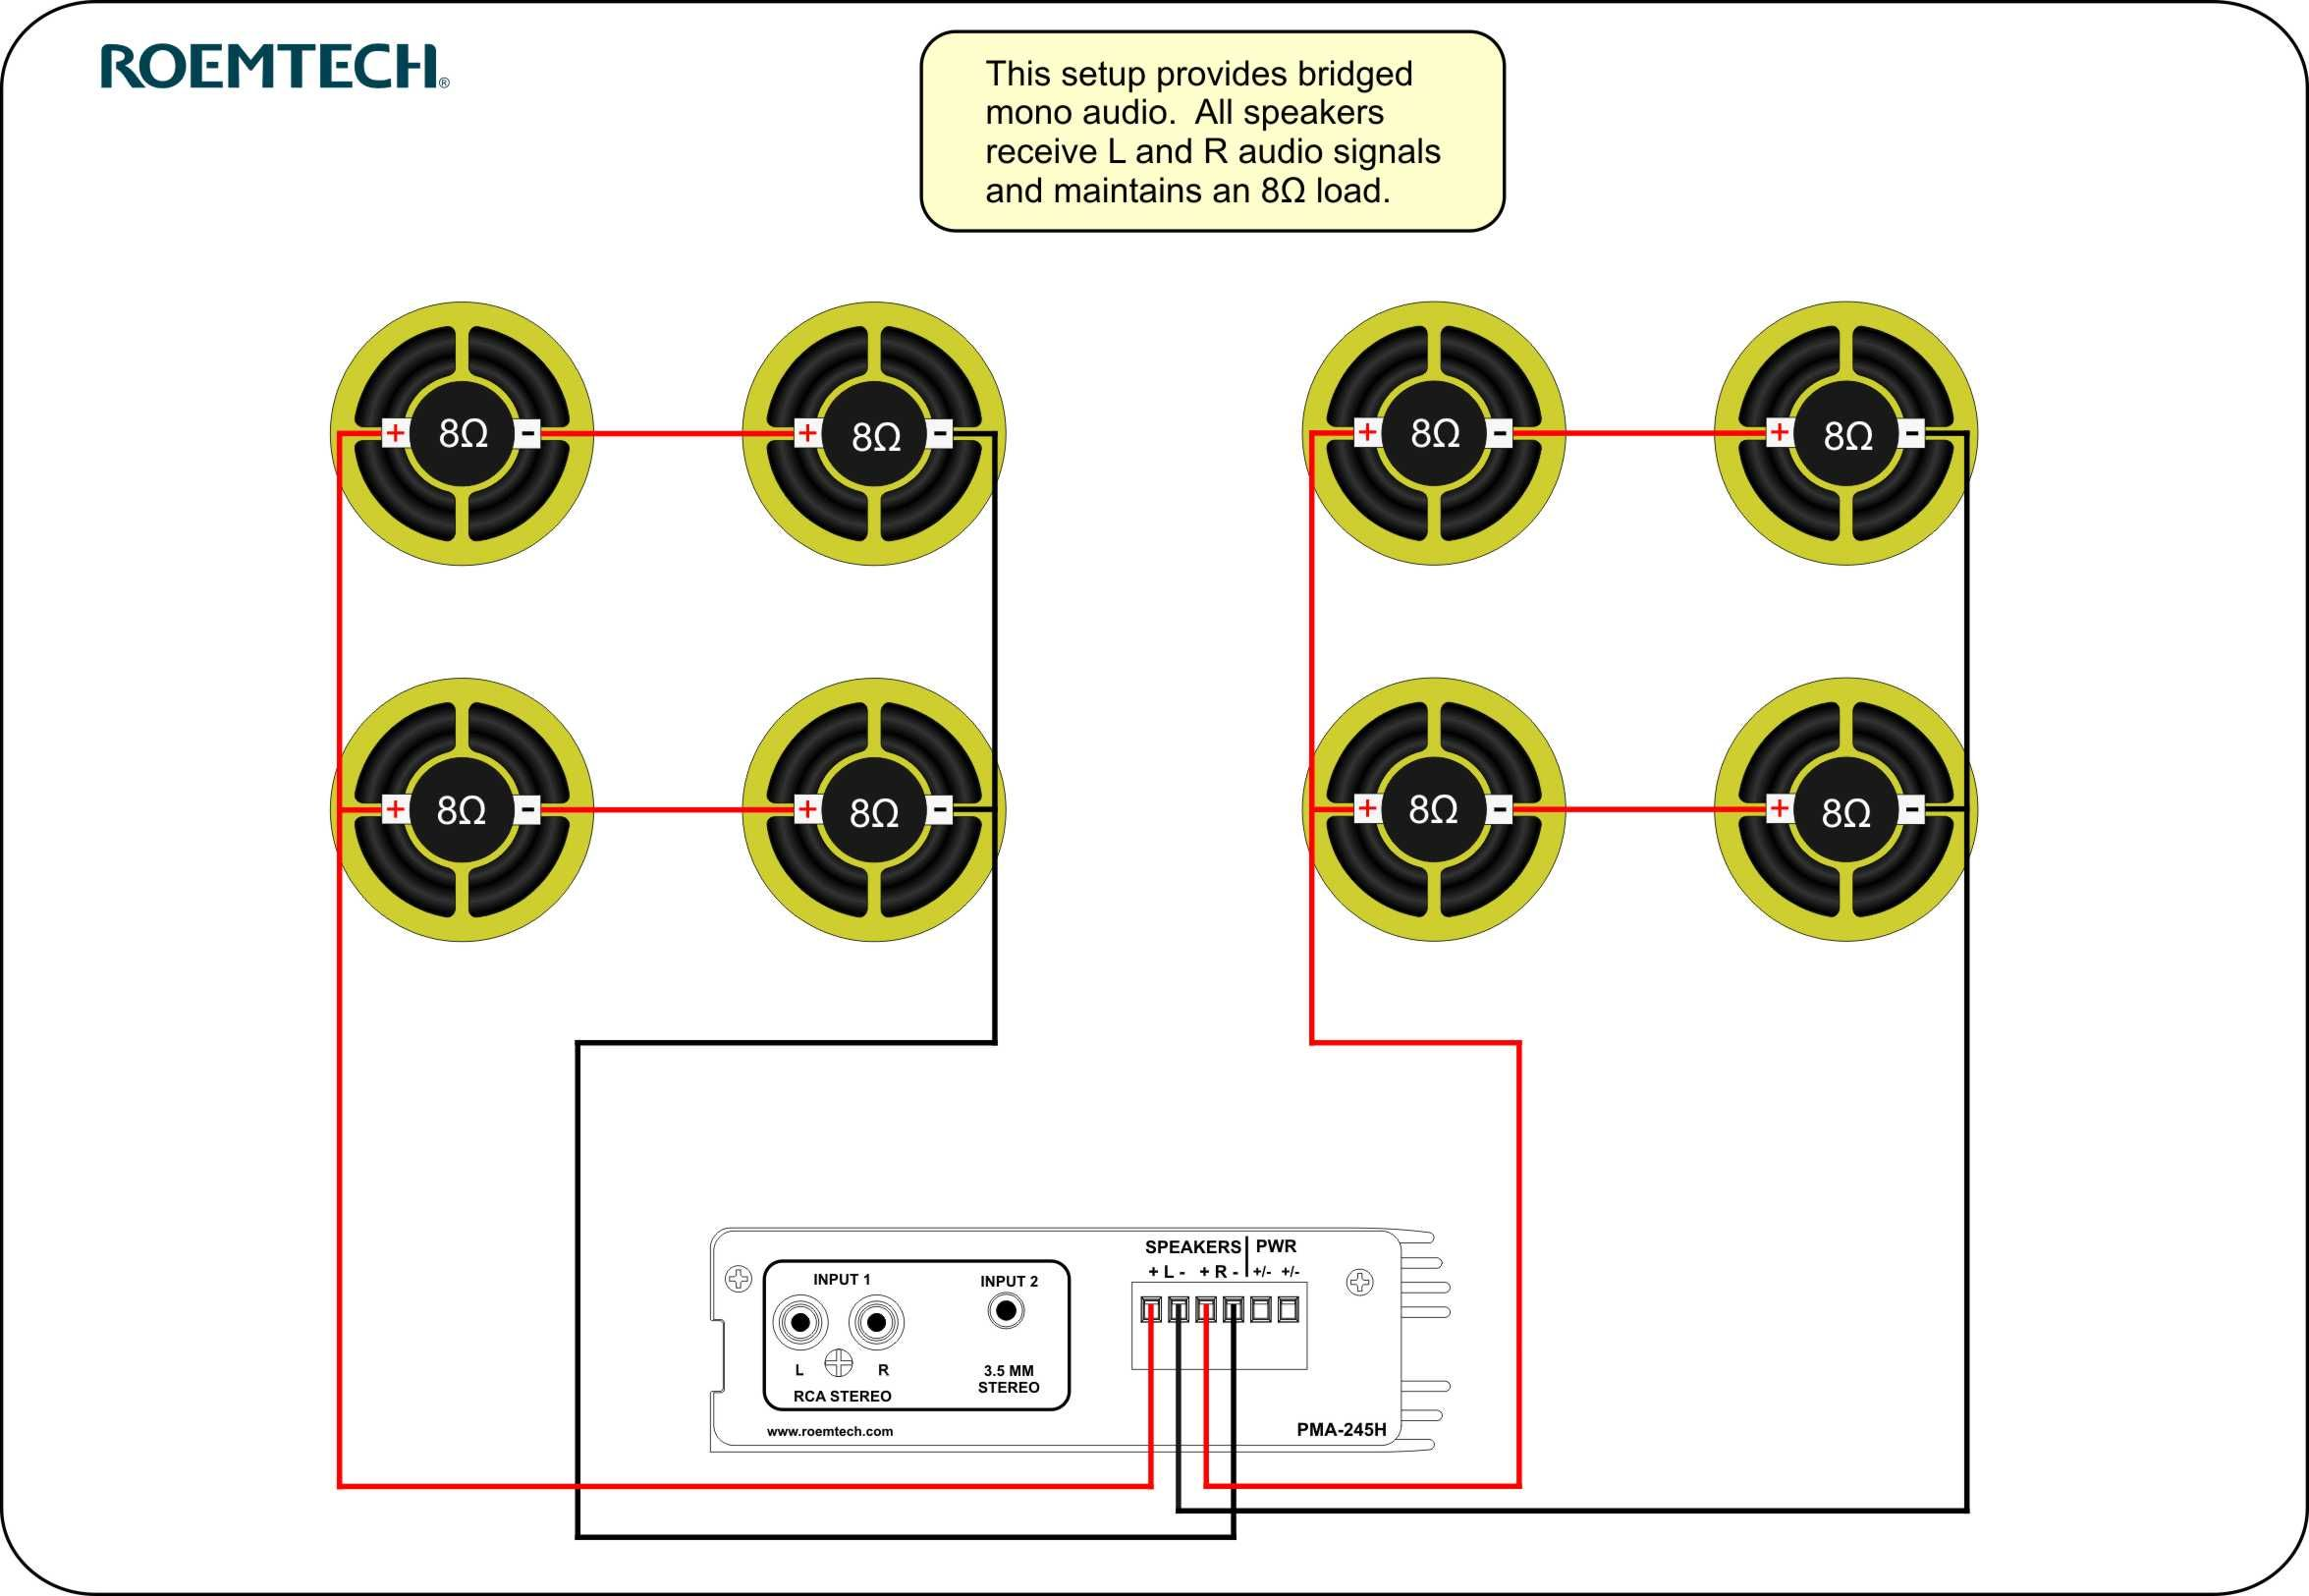 classroom audio systems multiple speaker wiring diagram kar 3-way crossover speaker wiring-diagram classroom audio systems multiple speaker wiring diagram